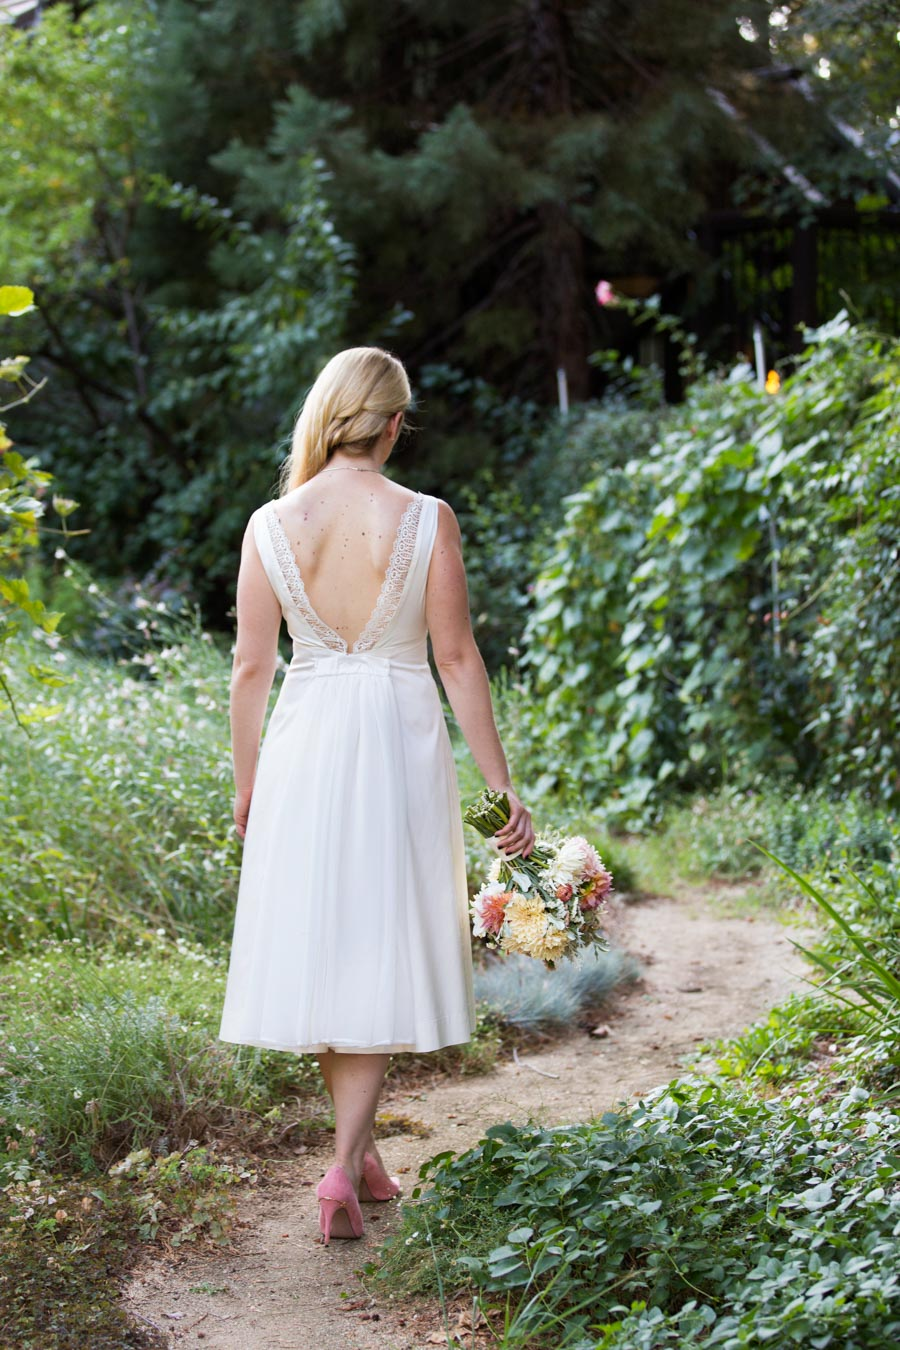 My Wedding Dress Story - Designing My Own Wedding Dress - Peach Floral Arrangement - Organic Farm Flowers